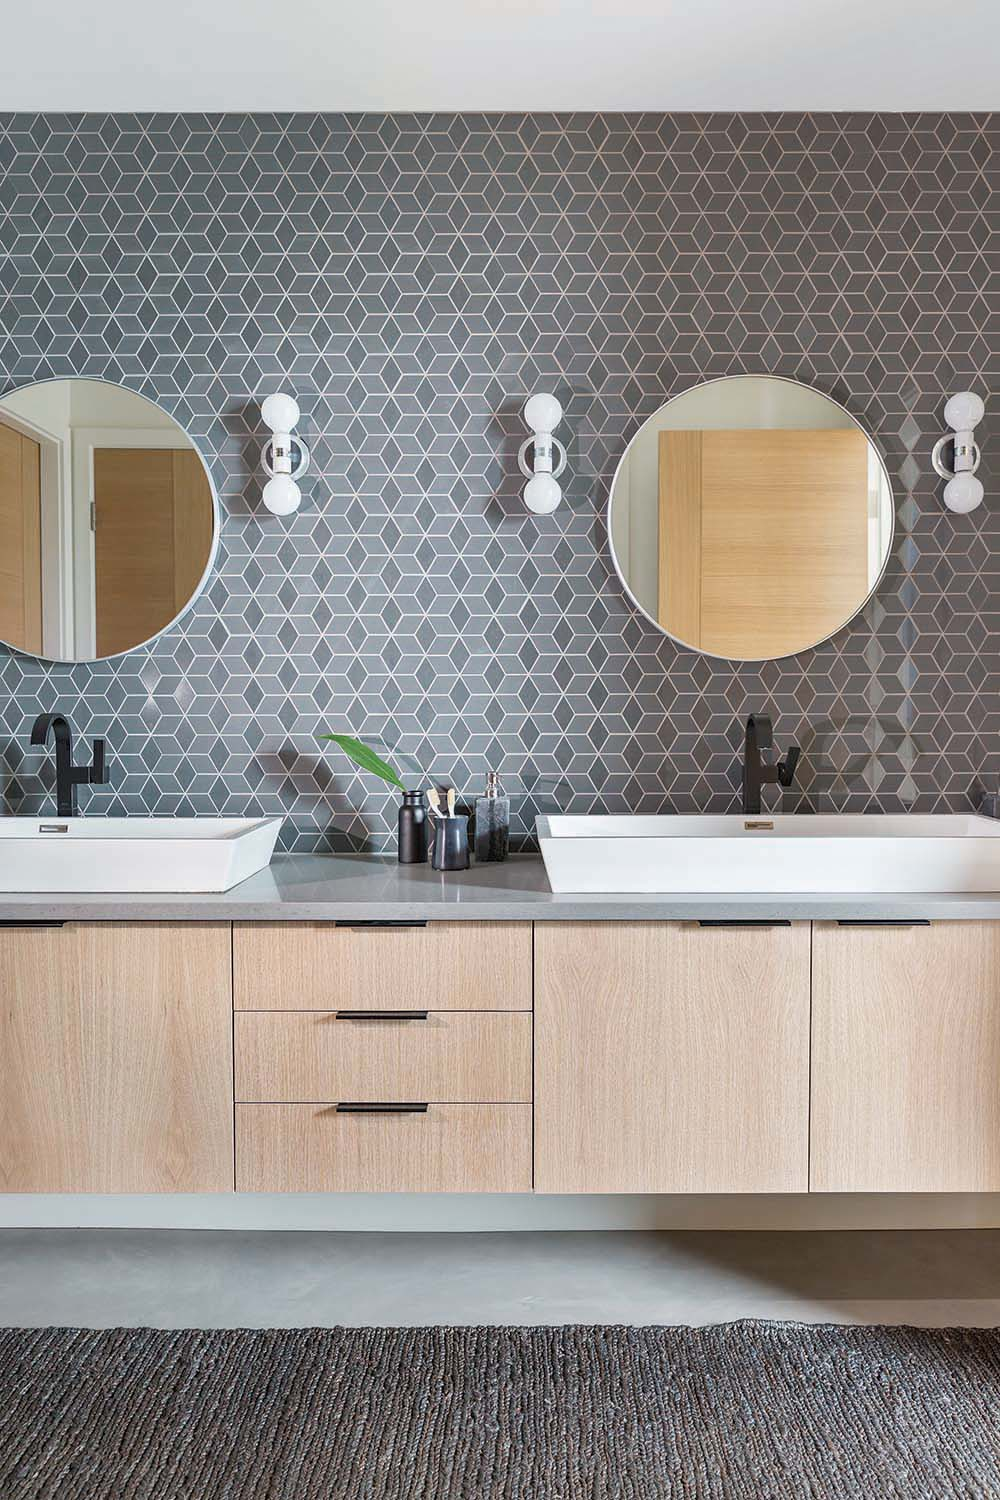 Western Living - May 2018  11 Beautiful Bathrooms That Make for Dreamy Retreats